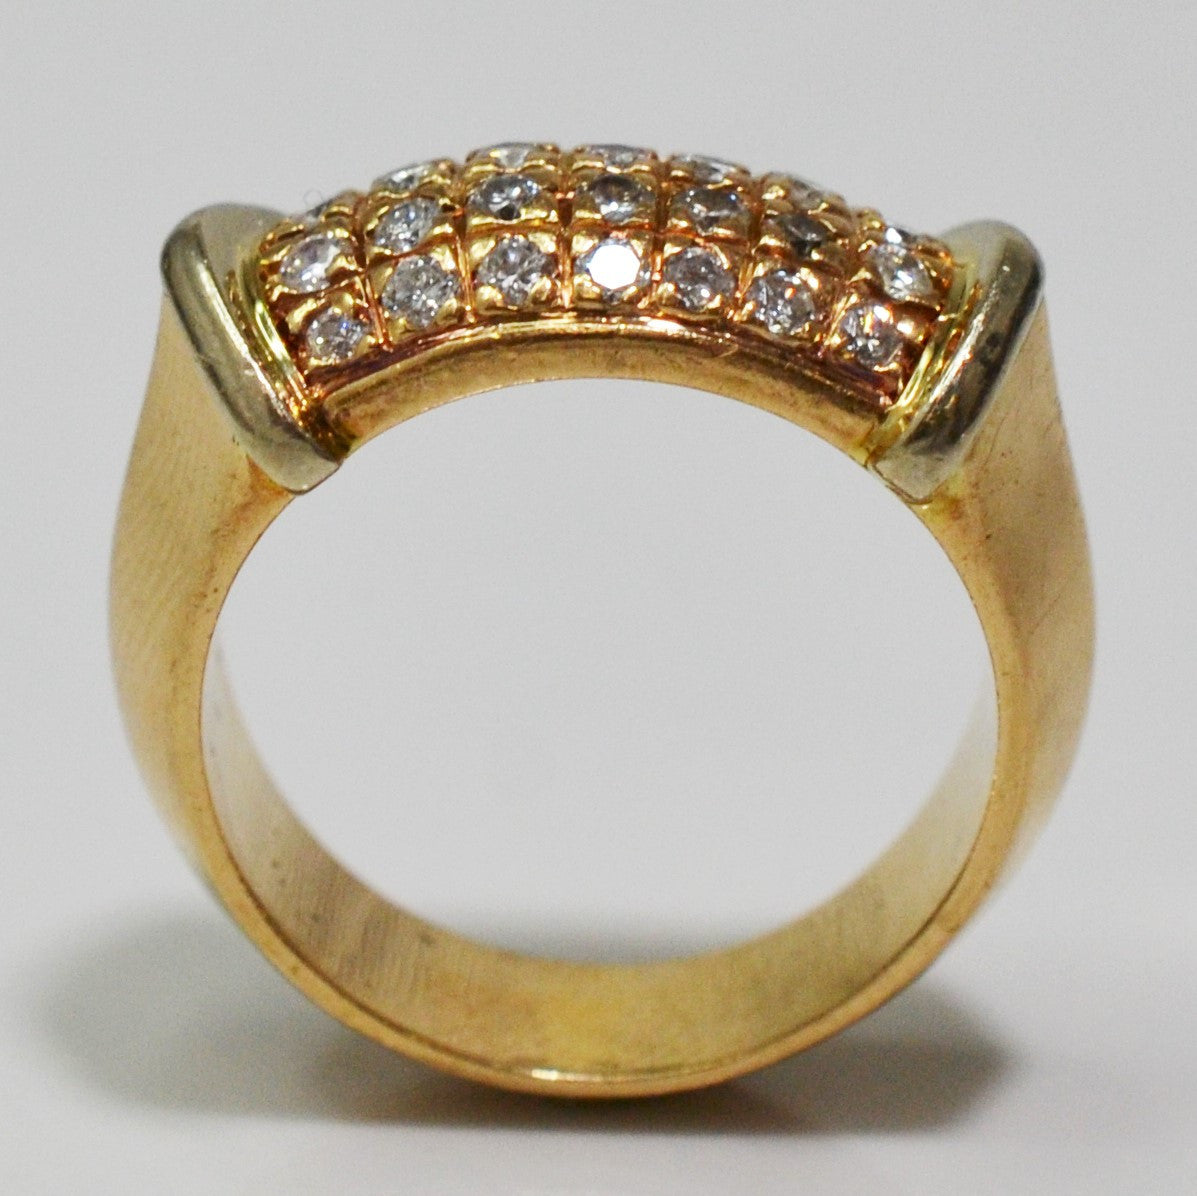 Four Row Diamond Ring | 0.70 ctw, SZ 6.75 |